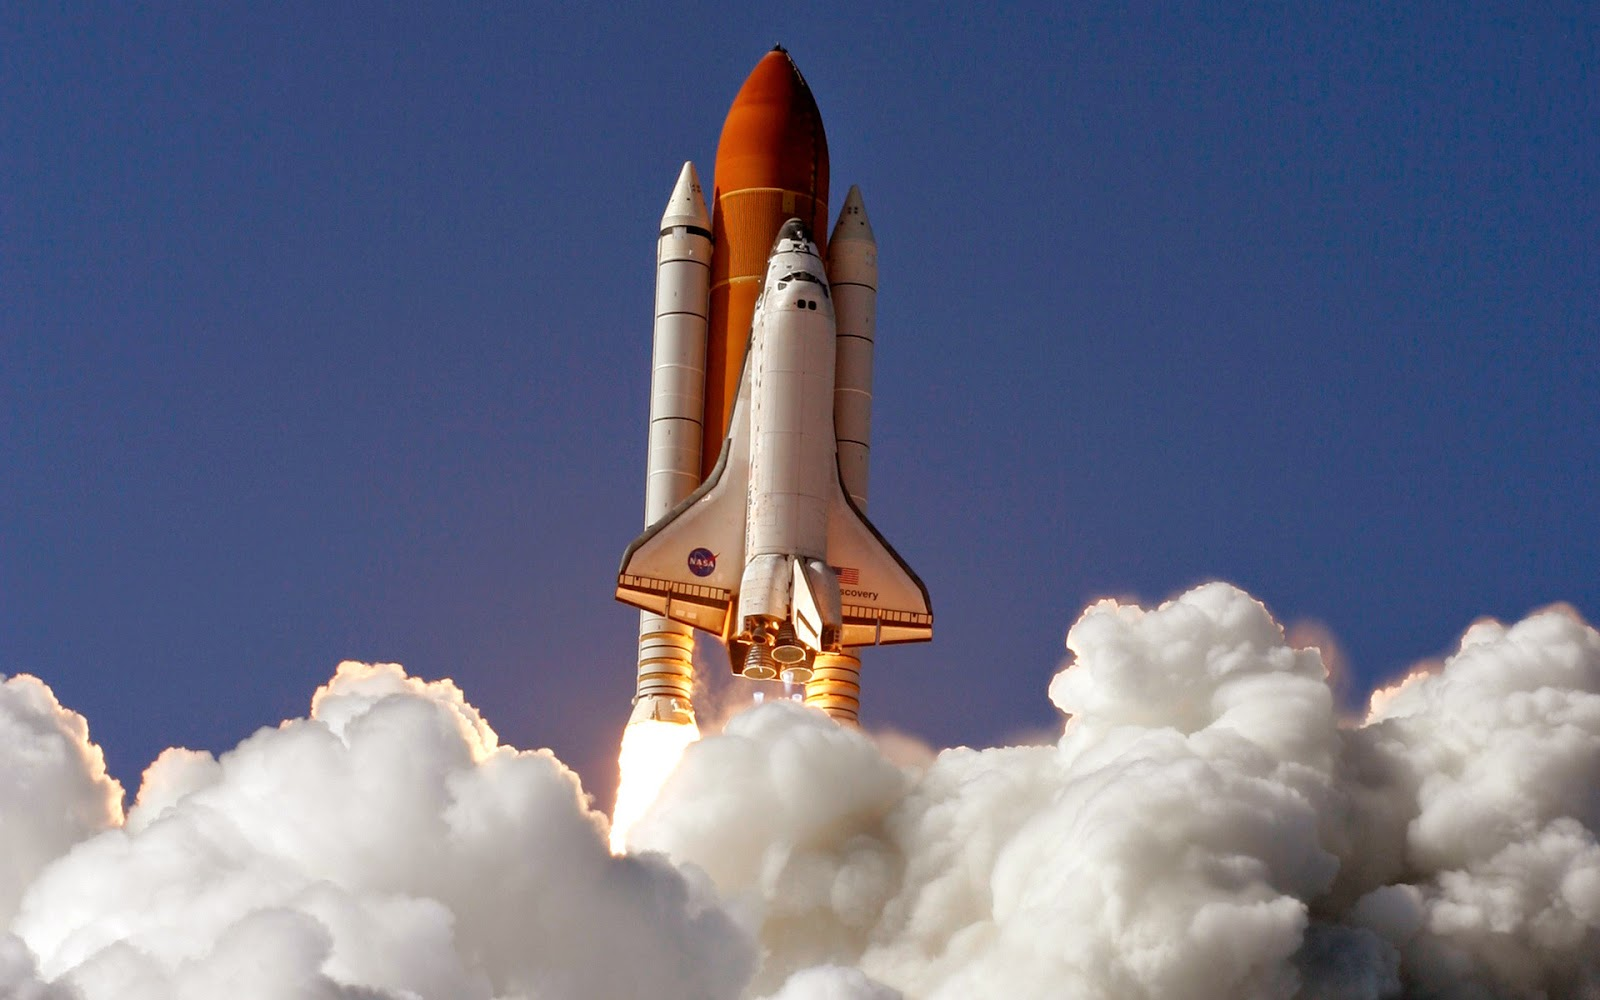 space shuttle mission failures - photo #18